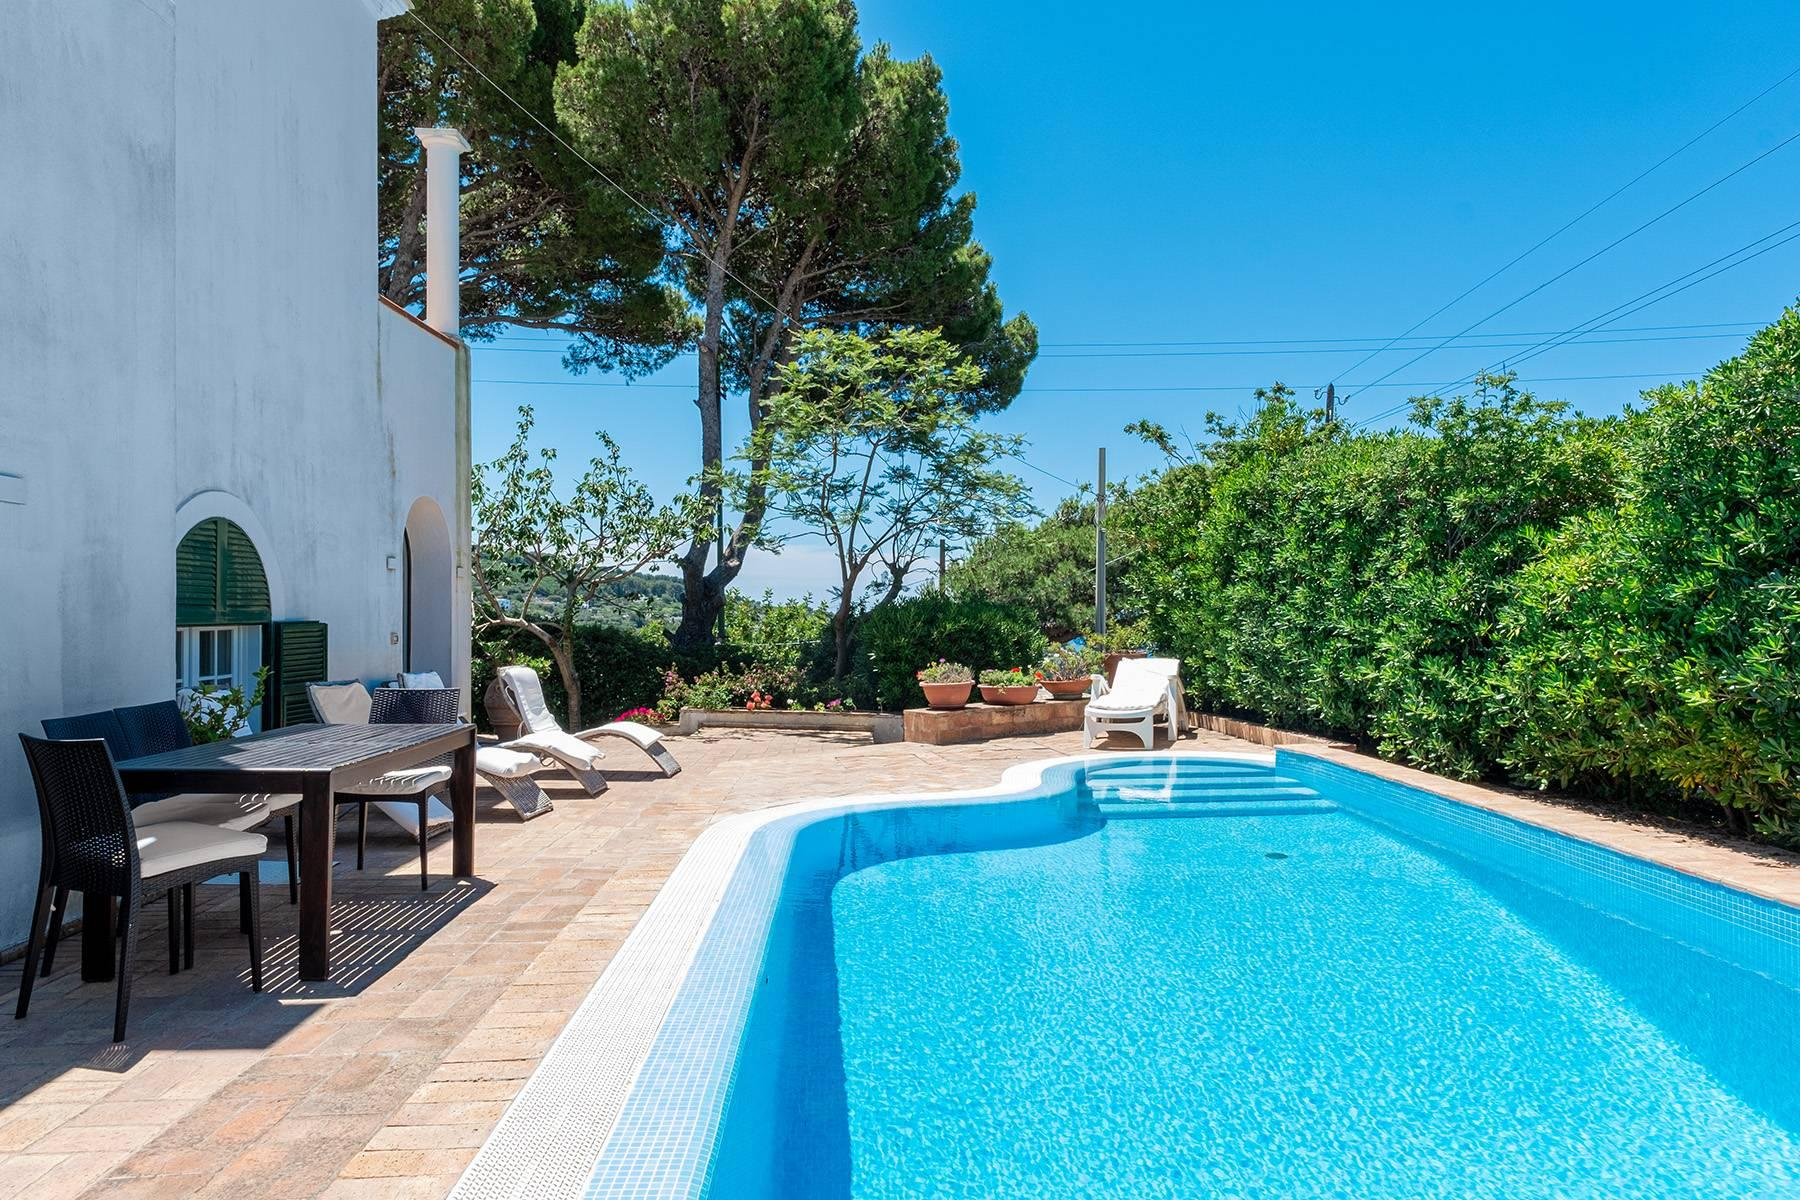 Charming villa with swimming pool in Anacapri - 4